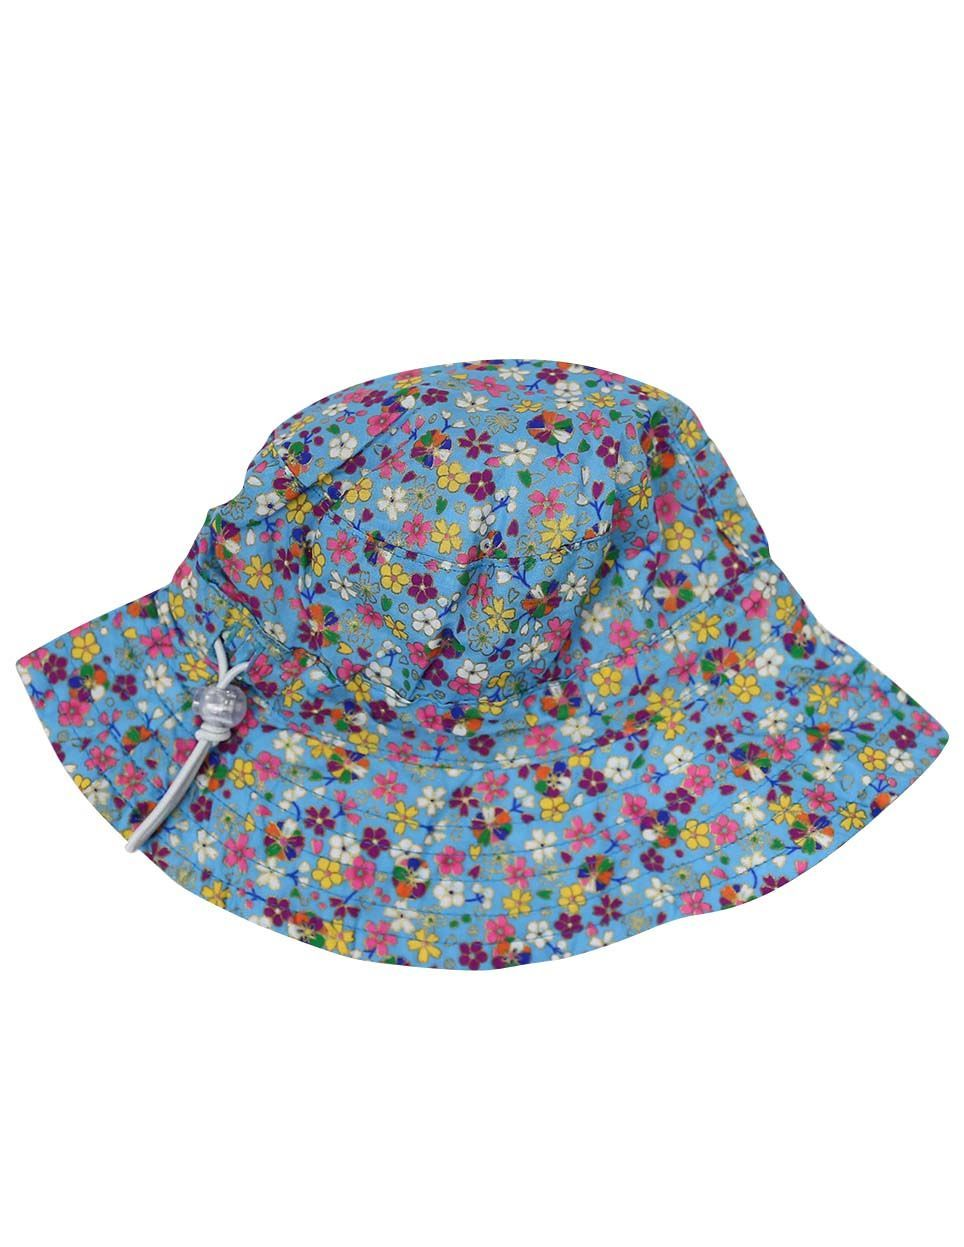 KORANGO Floral Hat in Blue